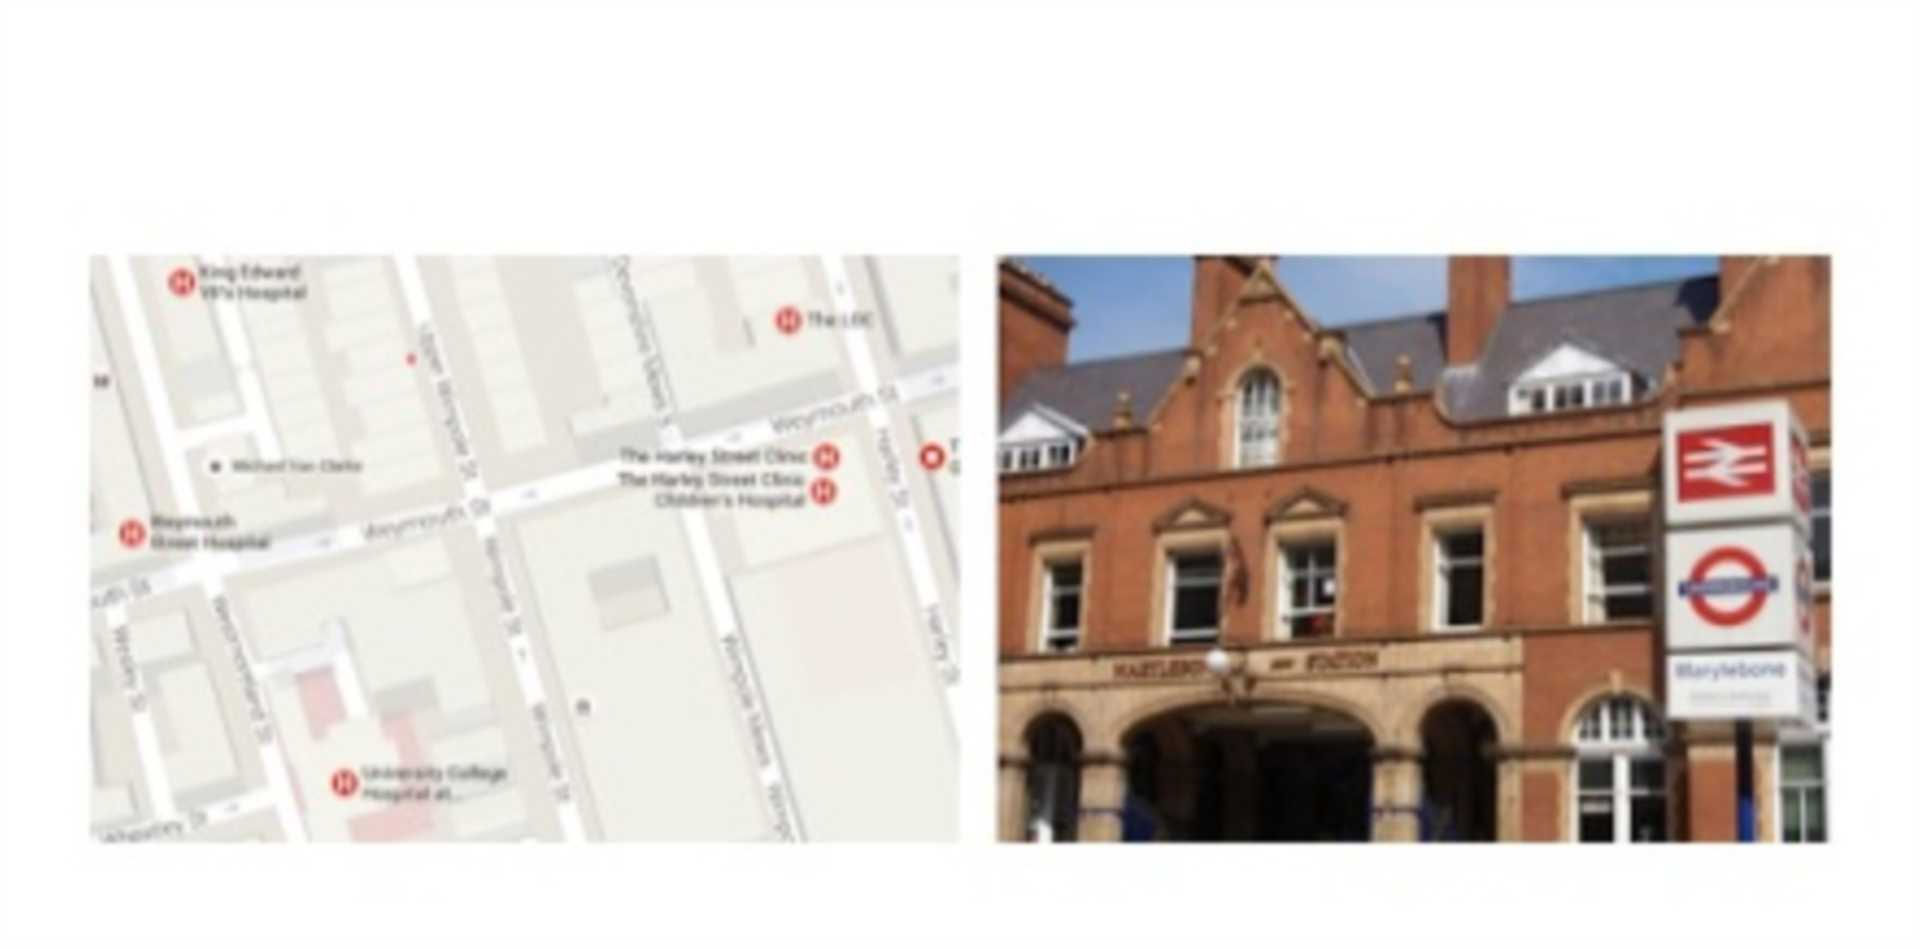 How do properties surrounding the Marylebone tube/rail station compare to properties located around the Marylebone hospital district? – Do these properties offer a good investment solution and how do they currently fare in the Marylebone property market?